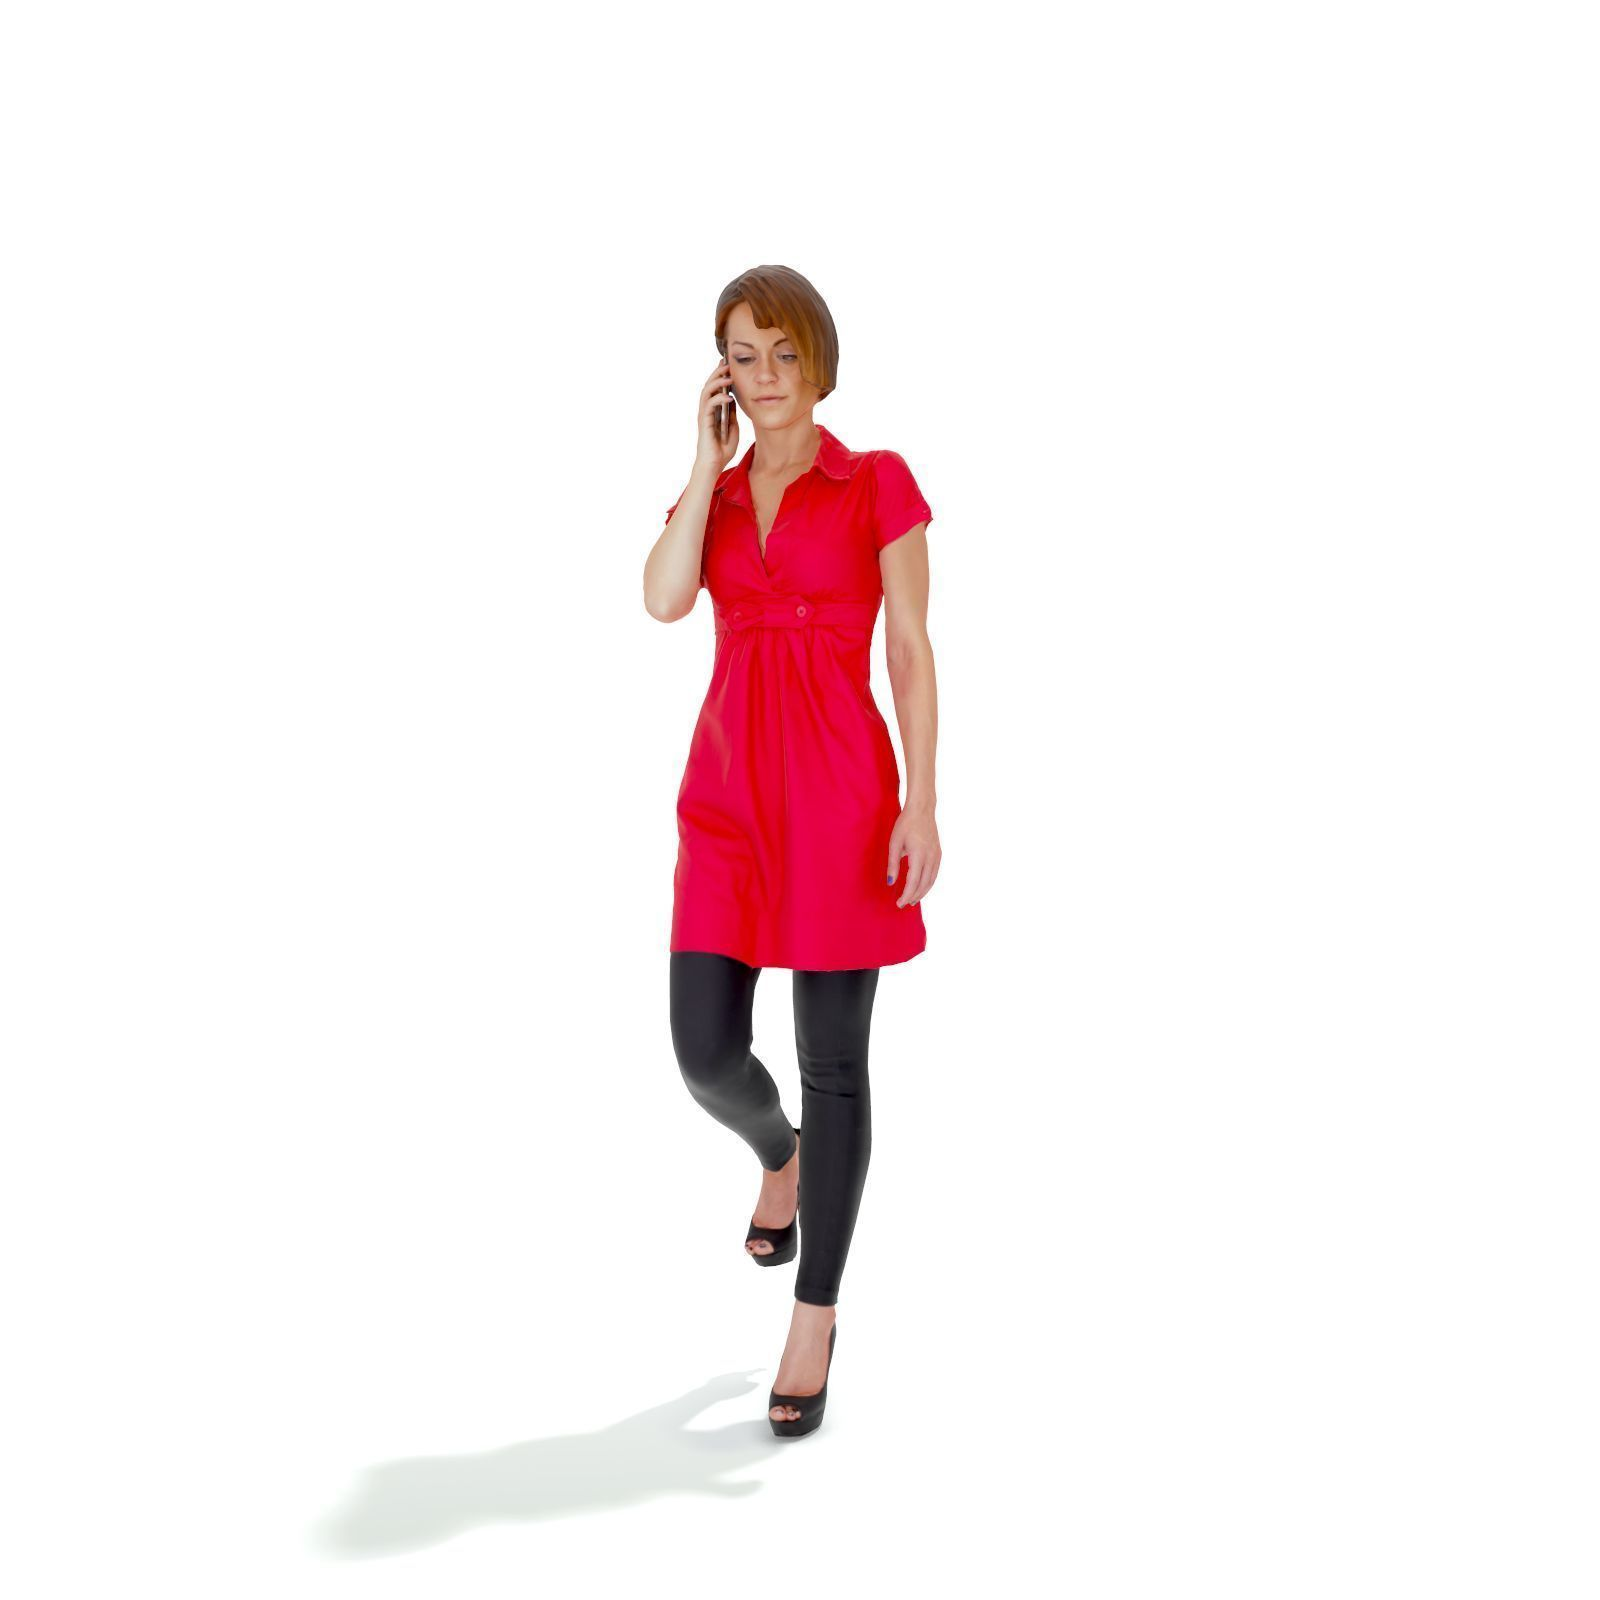 Woman with Red Dress Talking on Phone CWom0330-HD2-O01P01-S